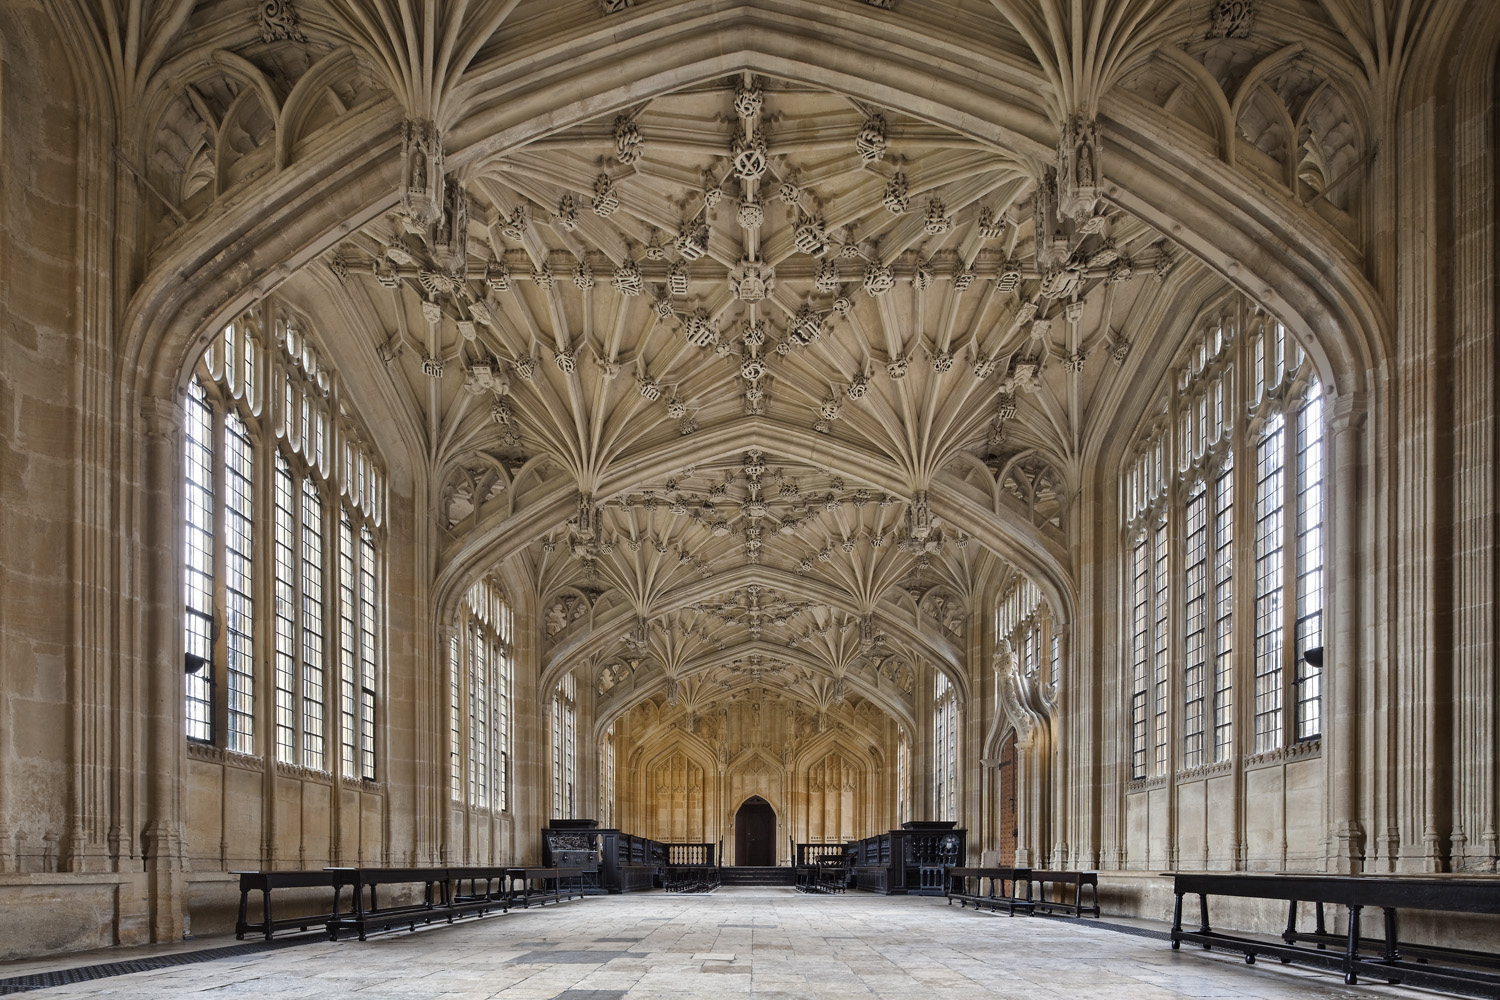 Divinity School, Bodleian Libraries, Oxford, UK